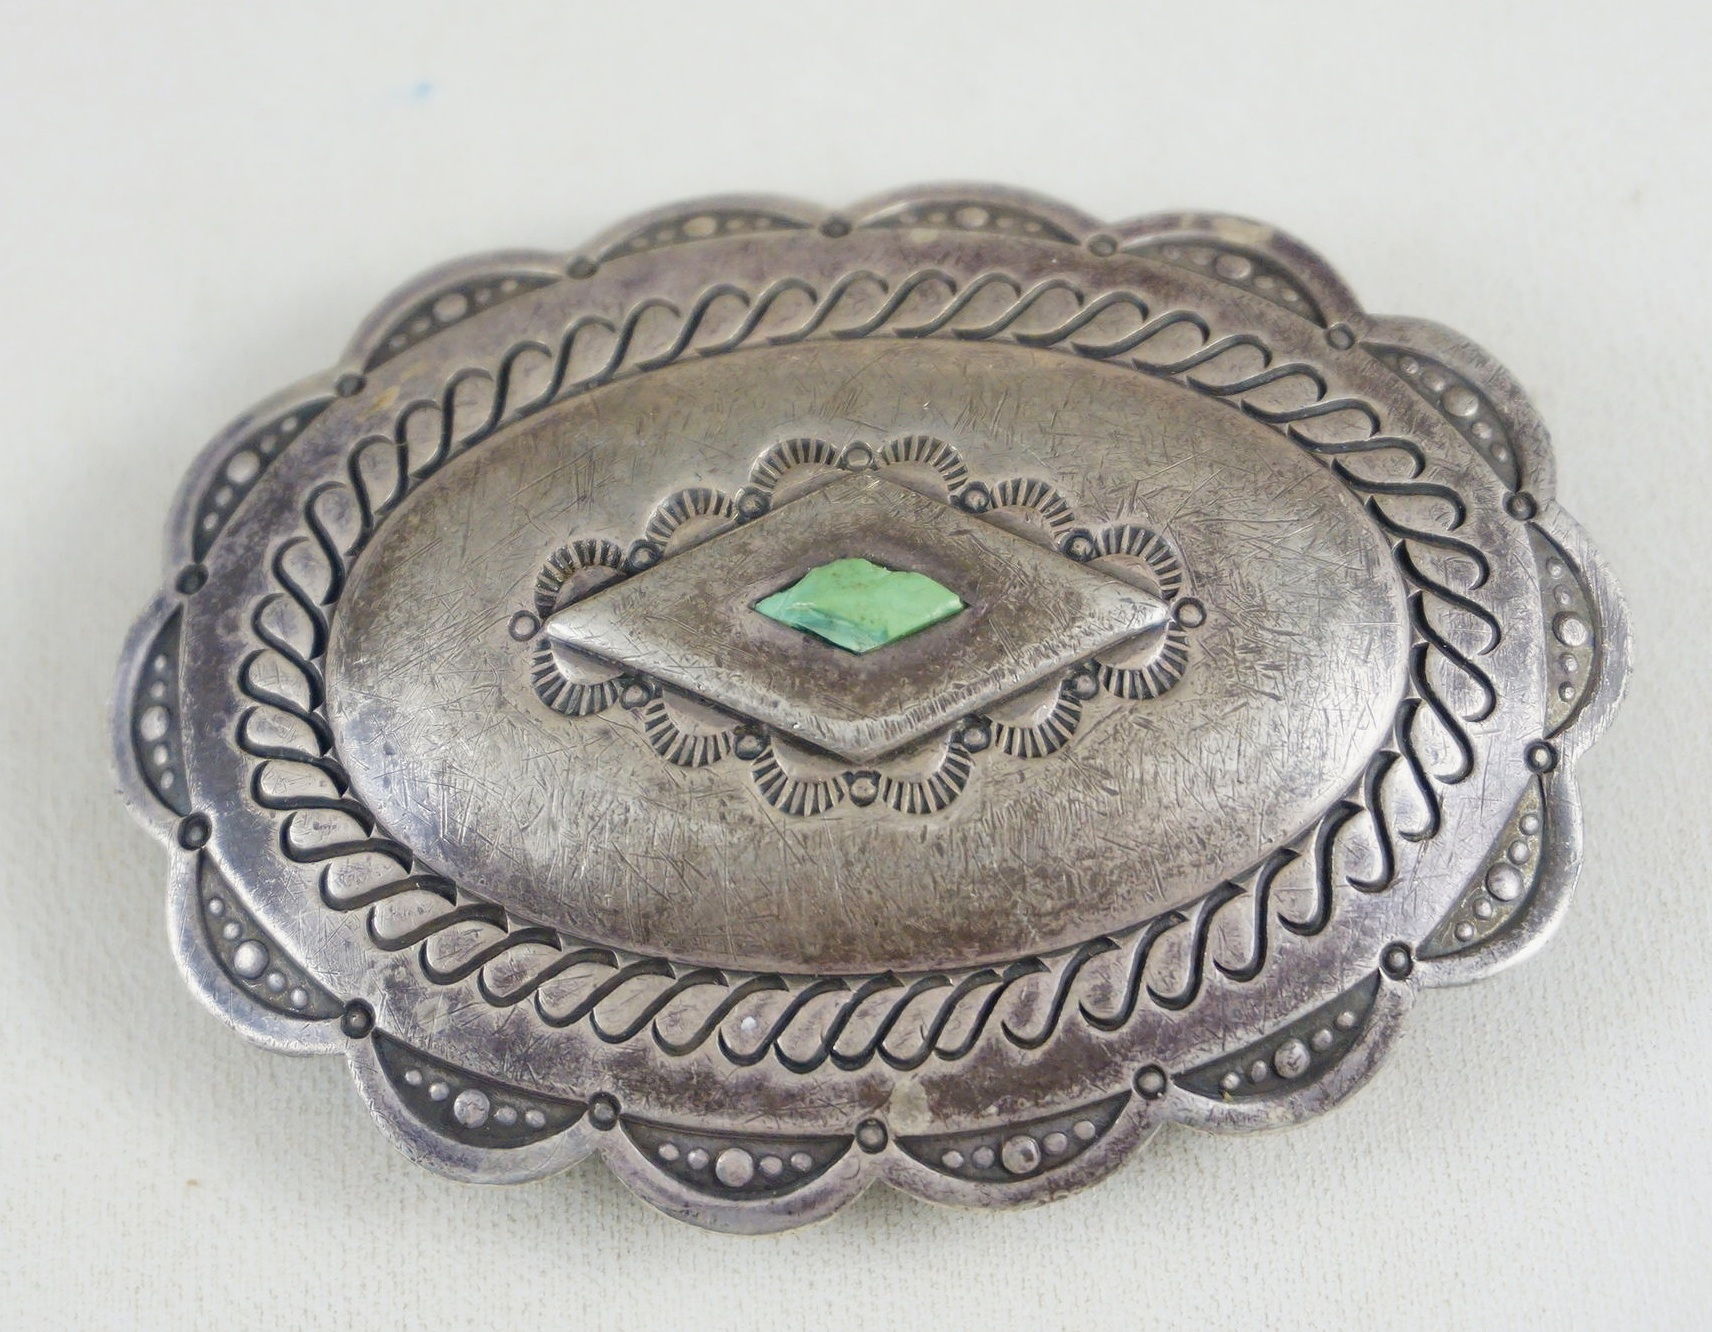 Item 897B Vintage 30s 40s Navajo Green Turquoise Decorative Stamped Collectors Concho Buckle Native American Belt Buckles EAGLE ROCK